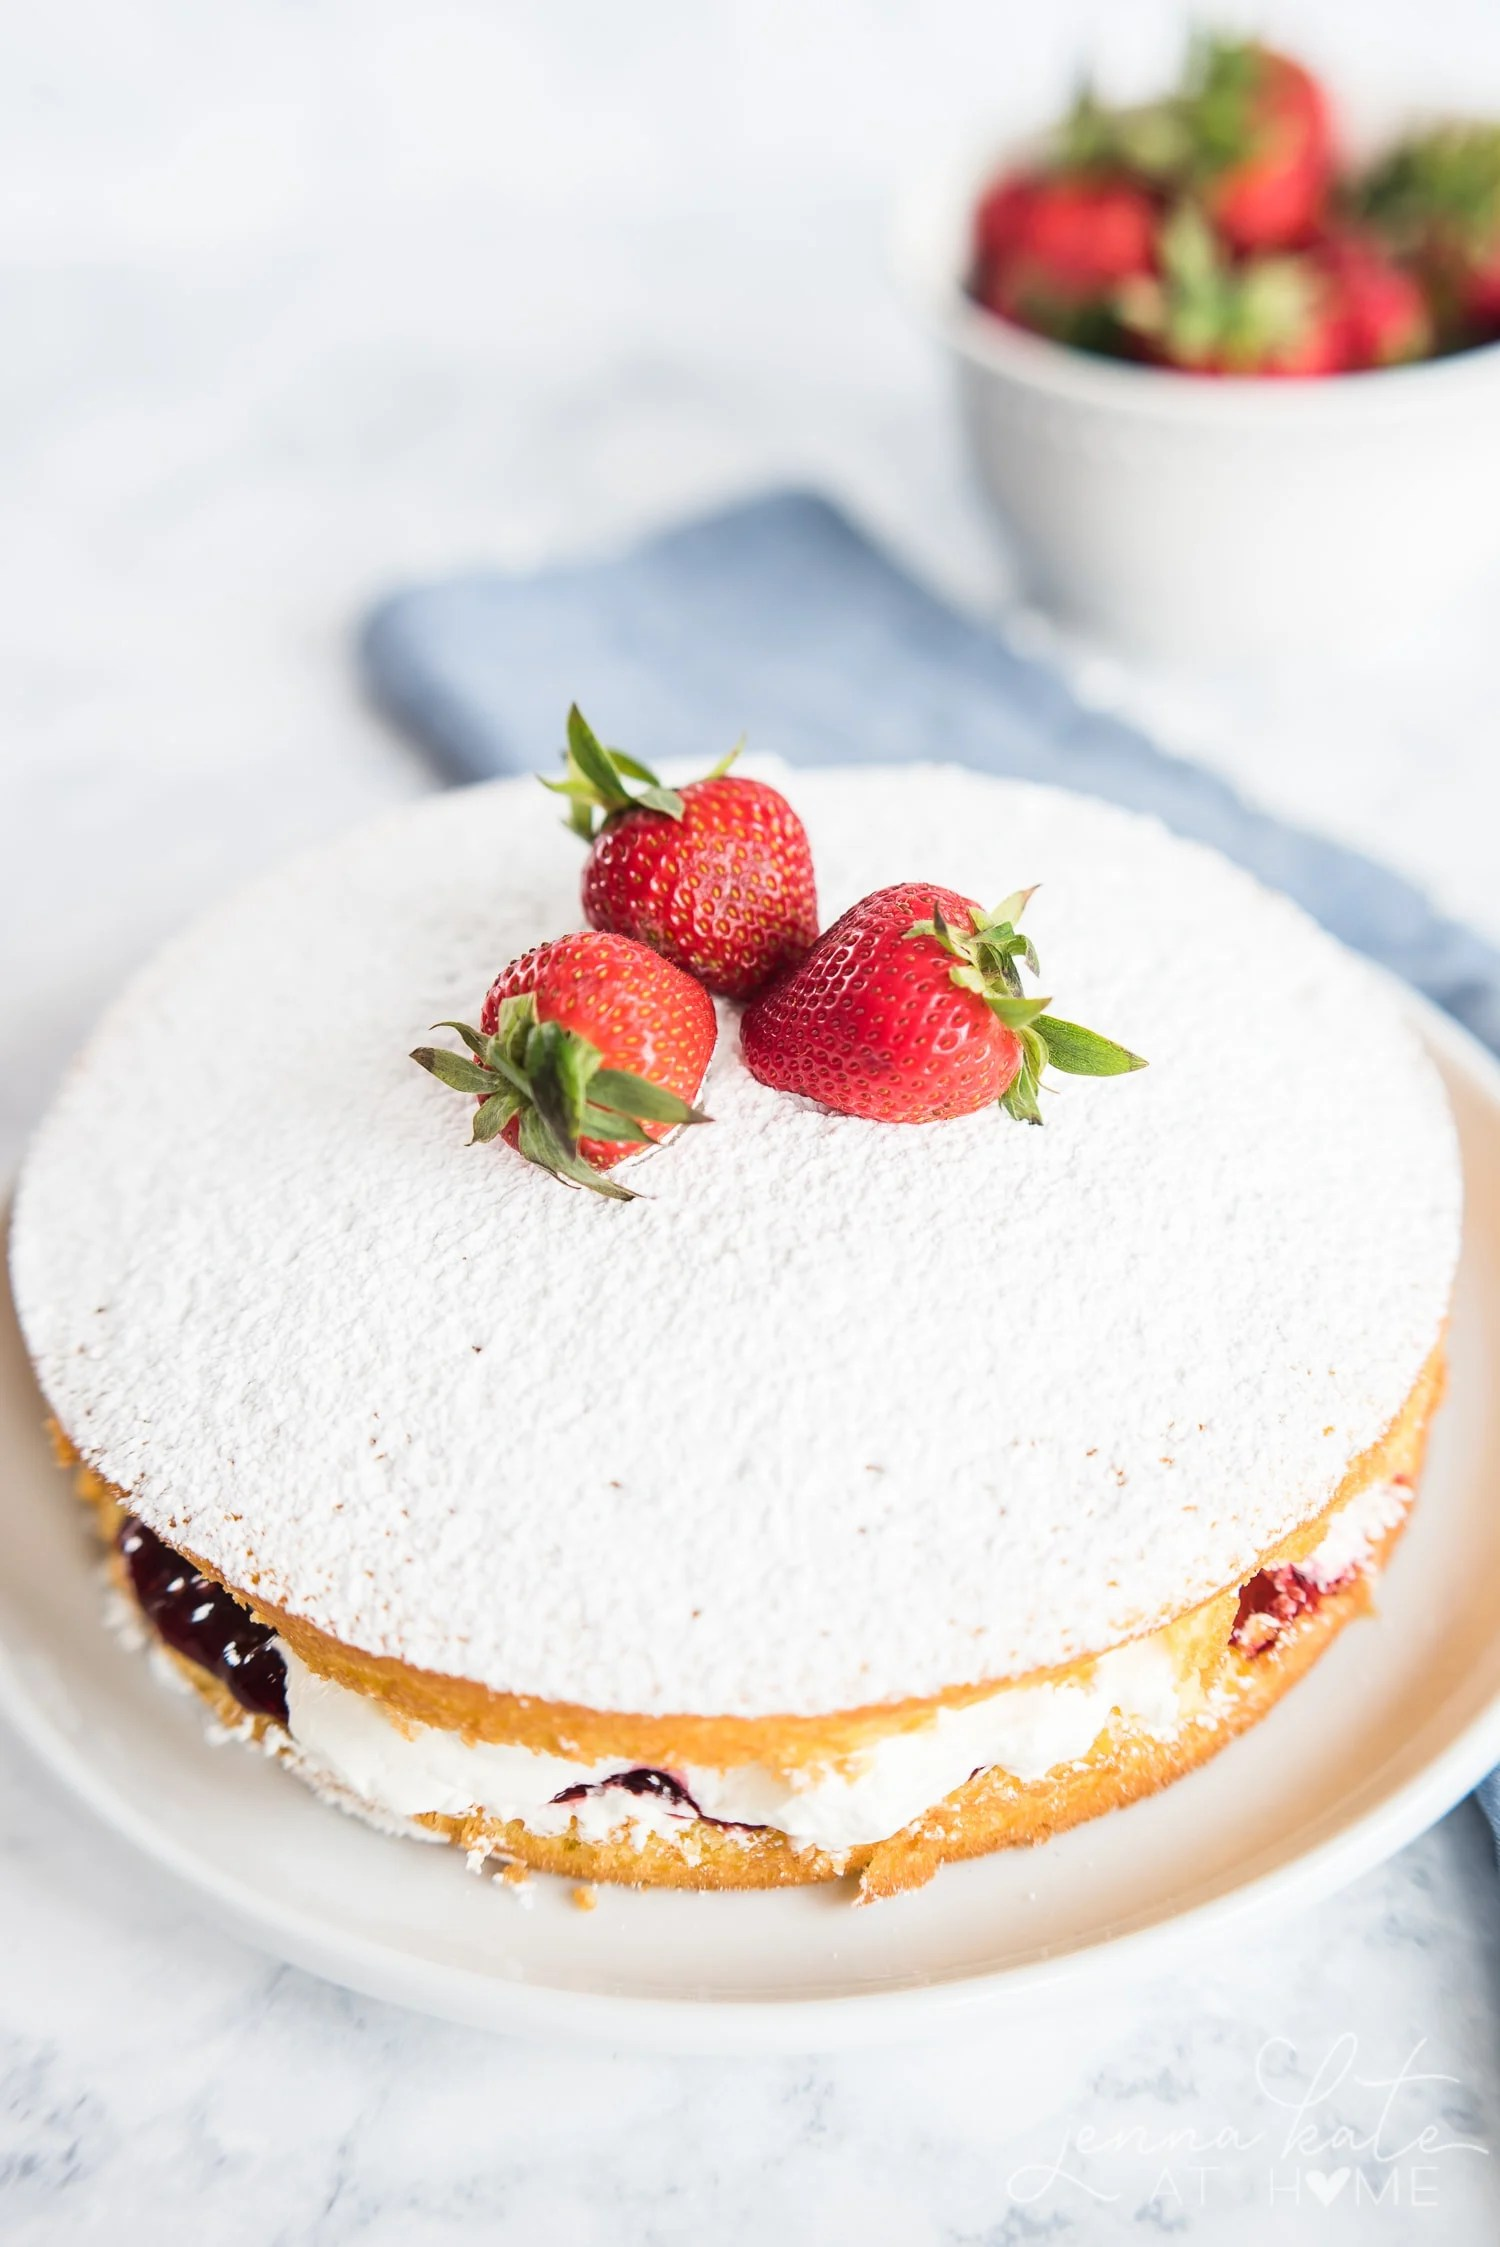 Top of victoria sponge cake, dusted with powdered sugar and topped with fresh whole strawberries